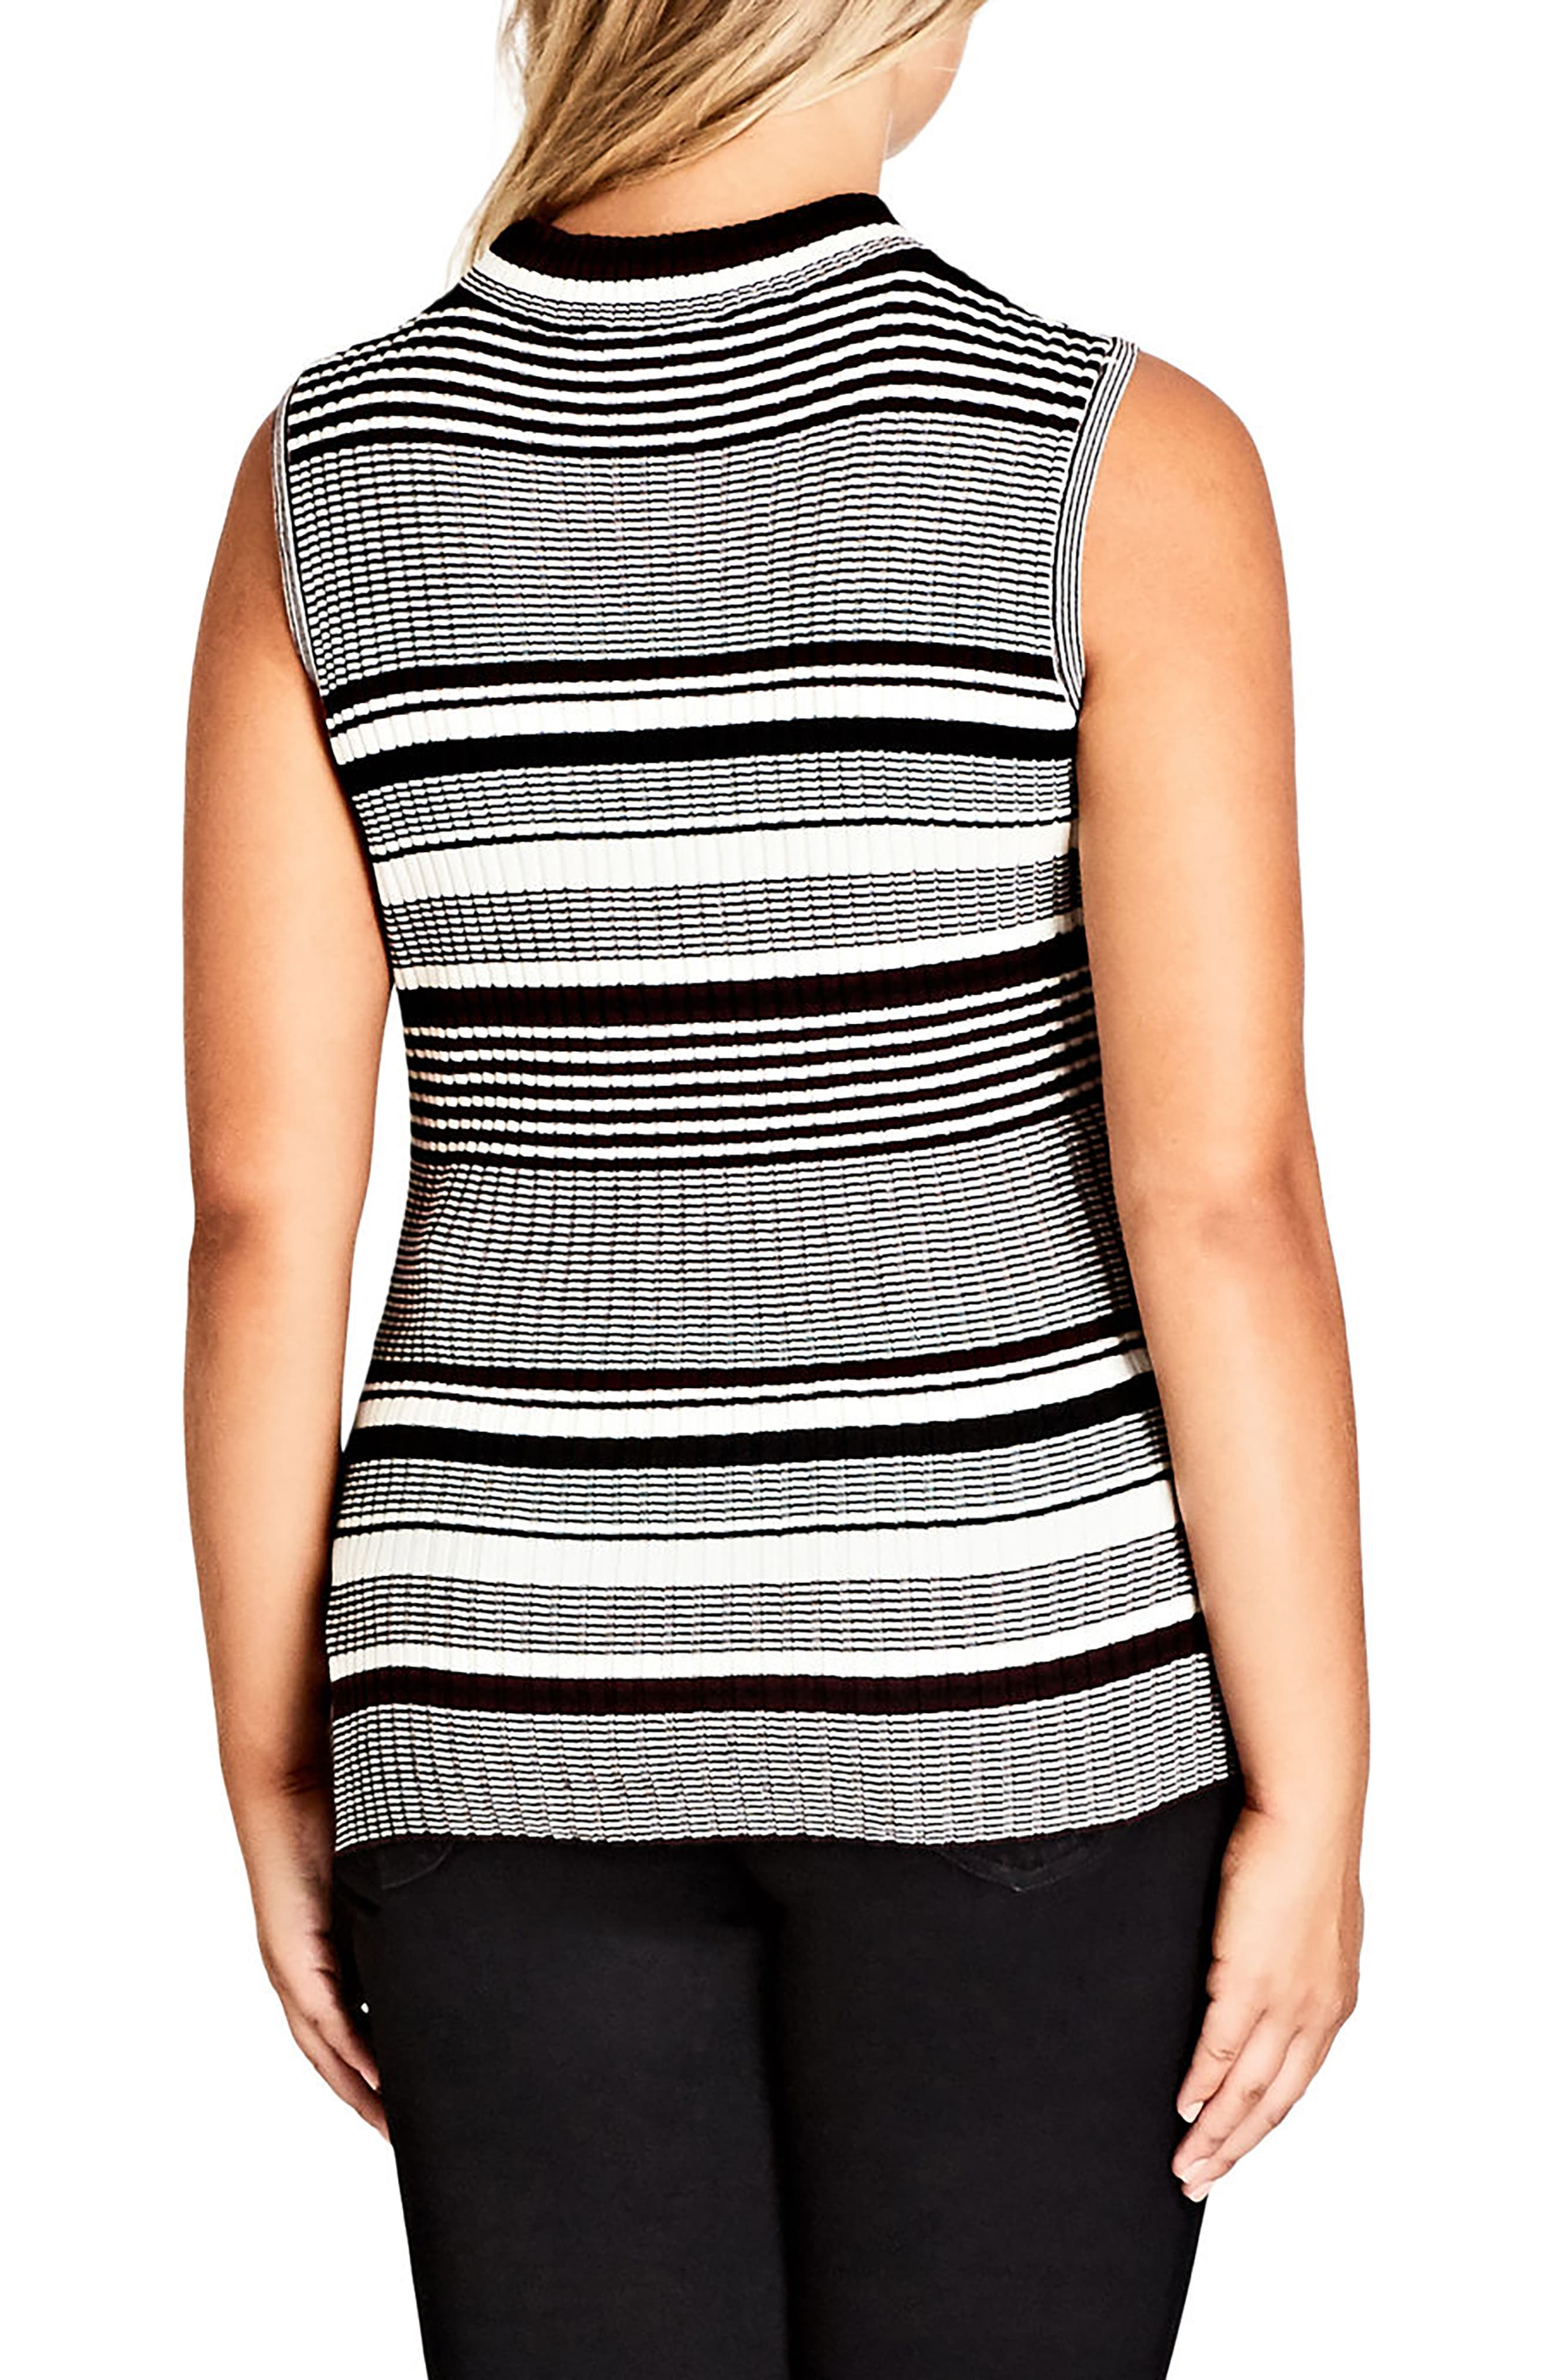 Chic City Stripe Play Top,                             Alternate thumbnail 2, color,                             001